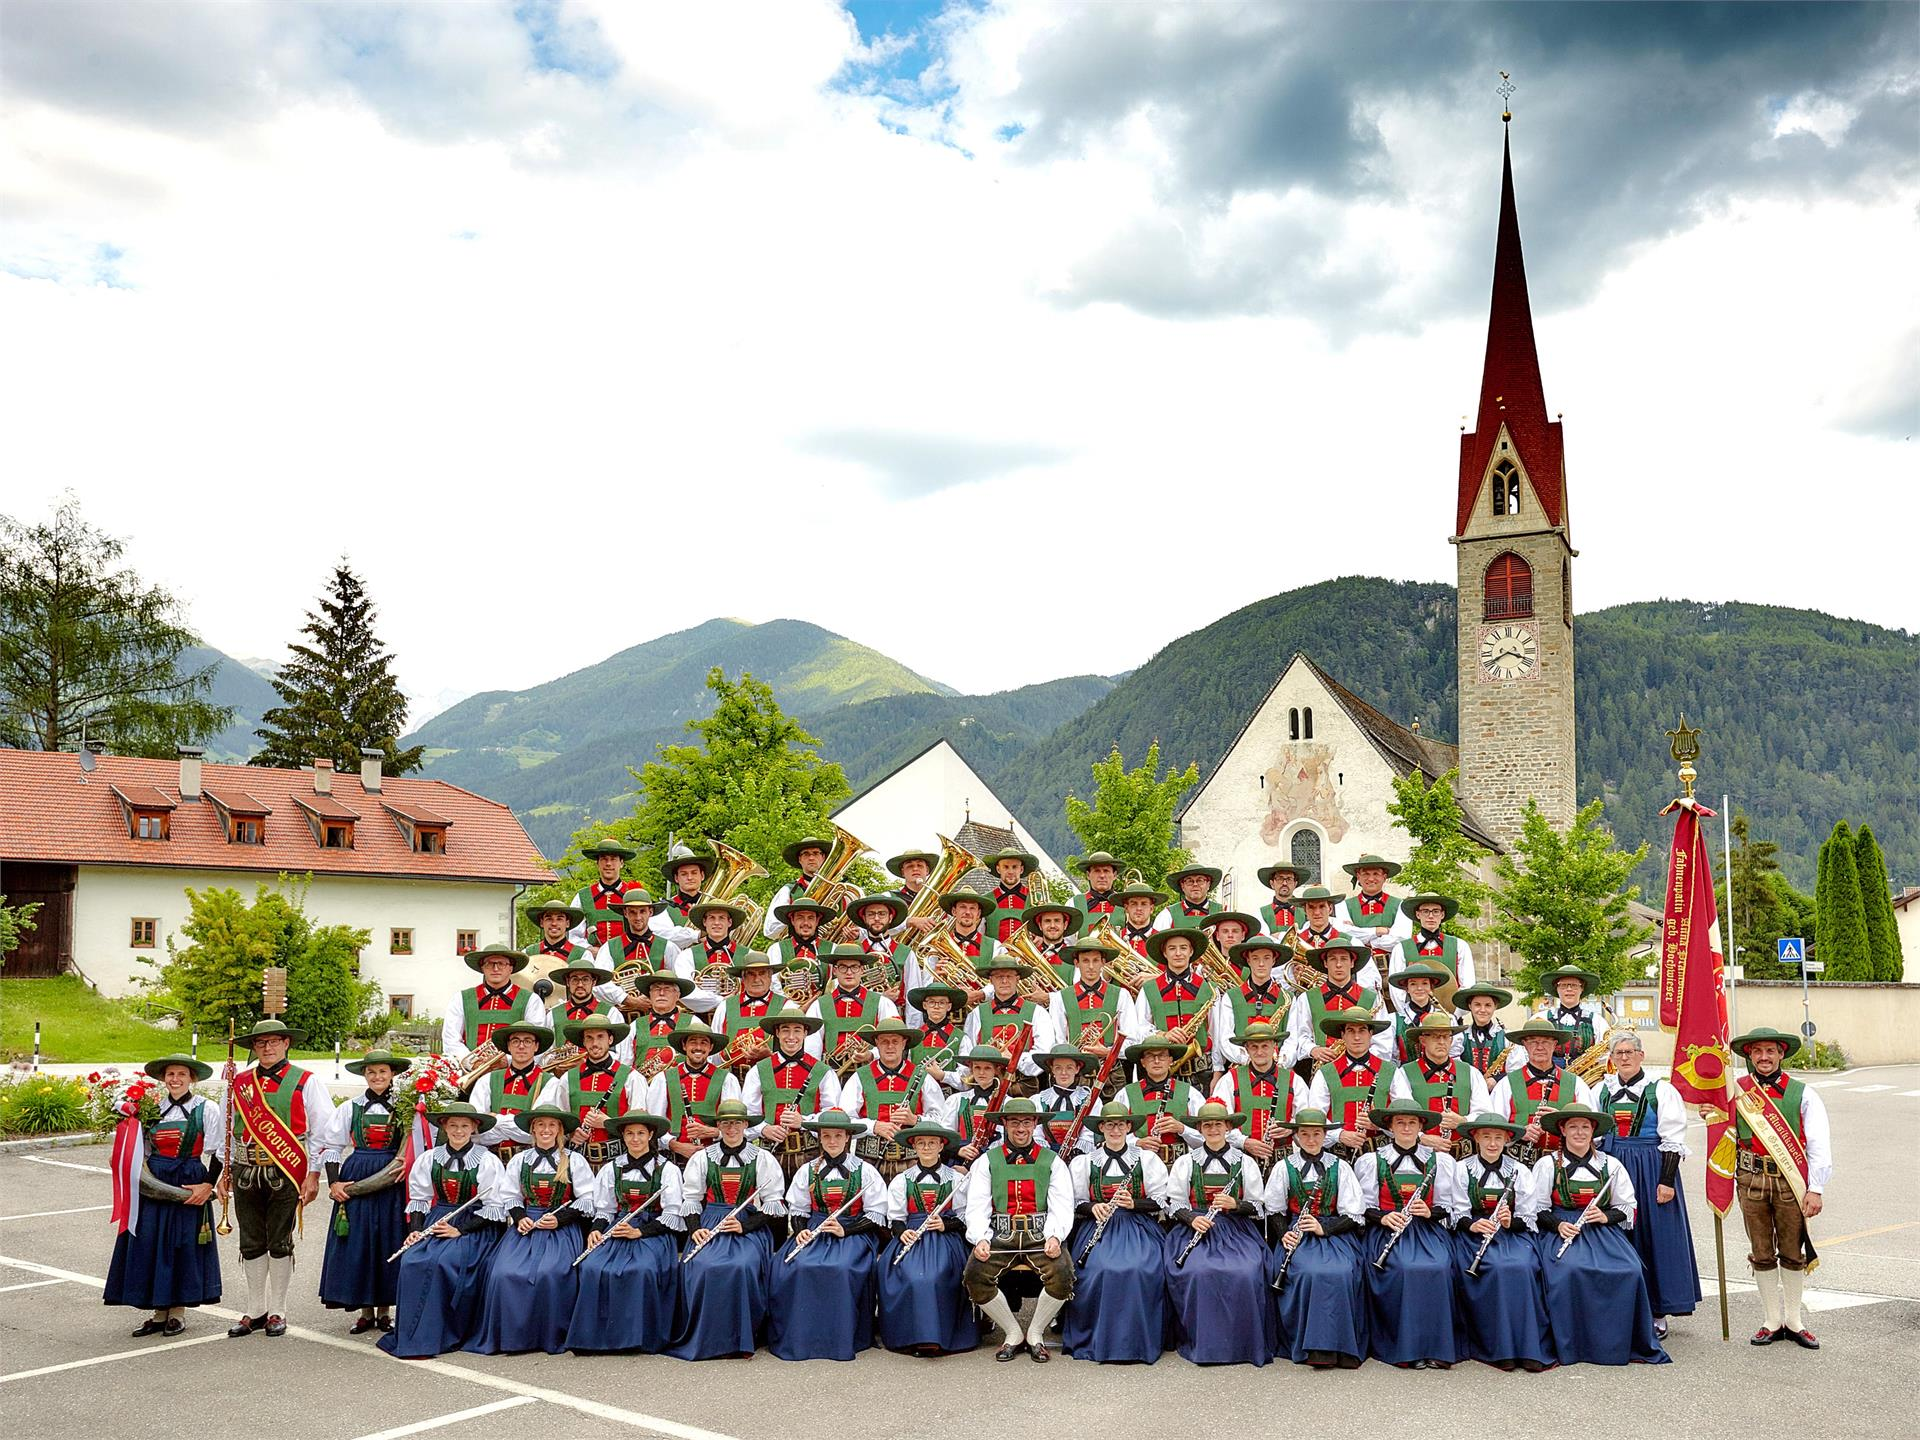 Spring Concert of the music band St. Georgen/S. Giorgio